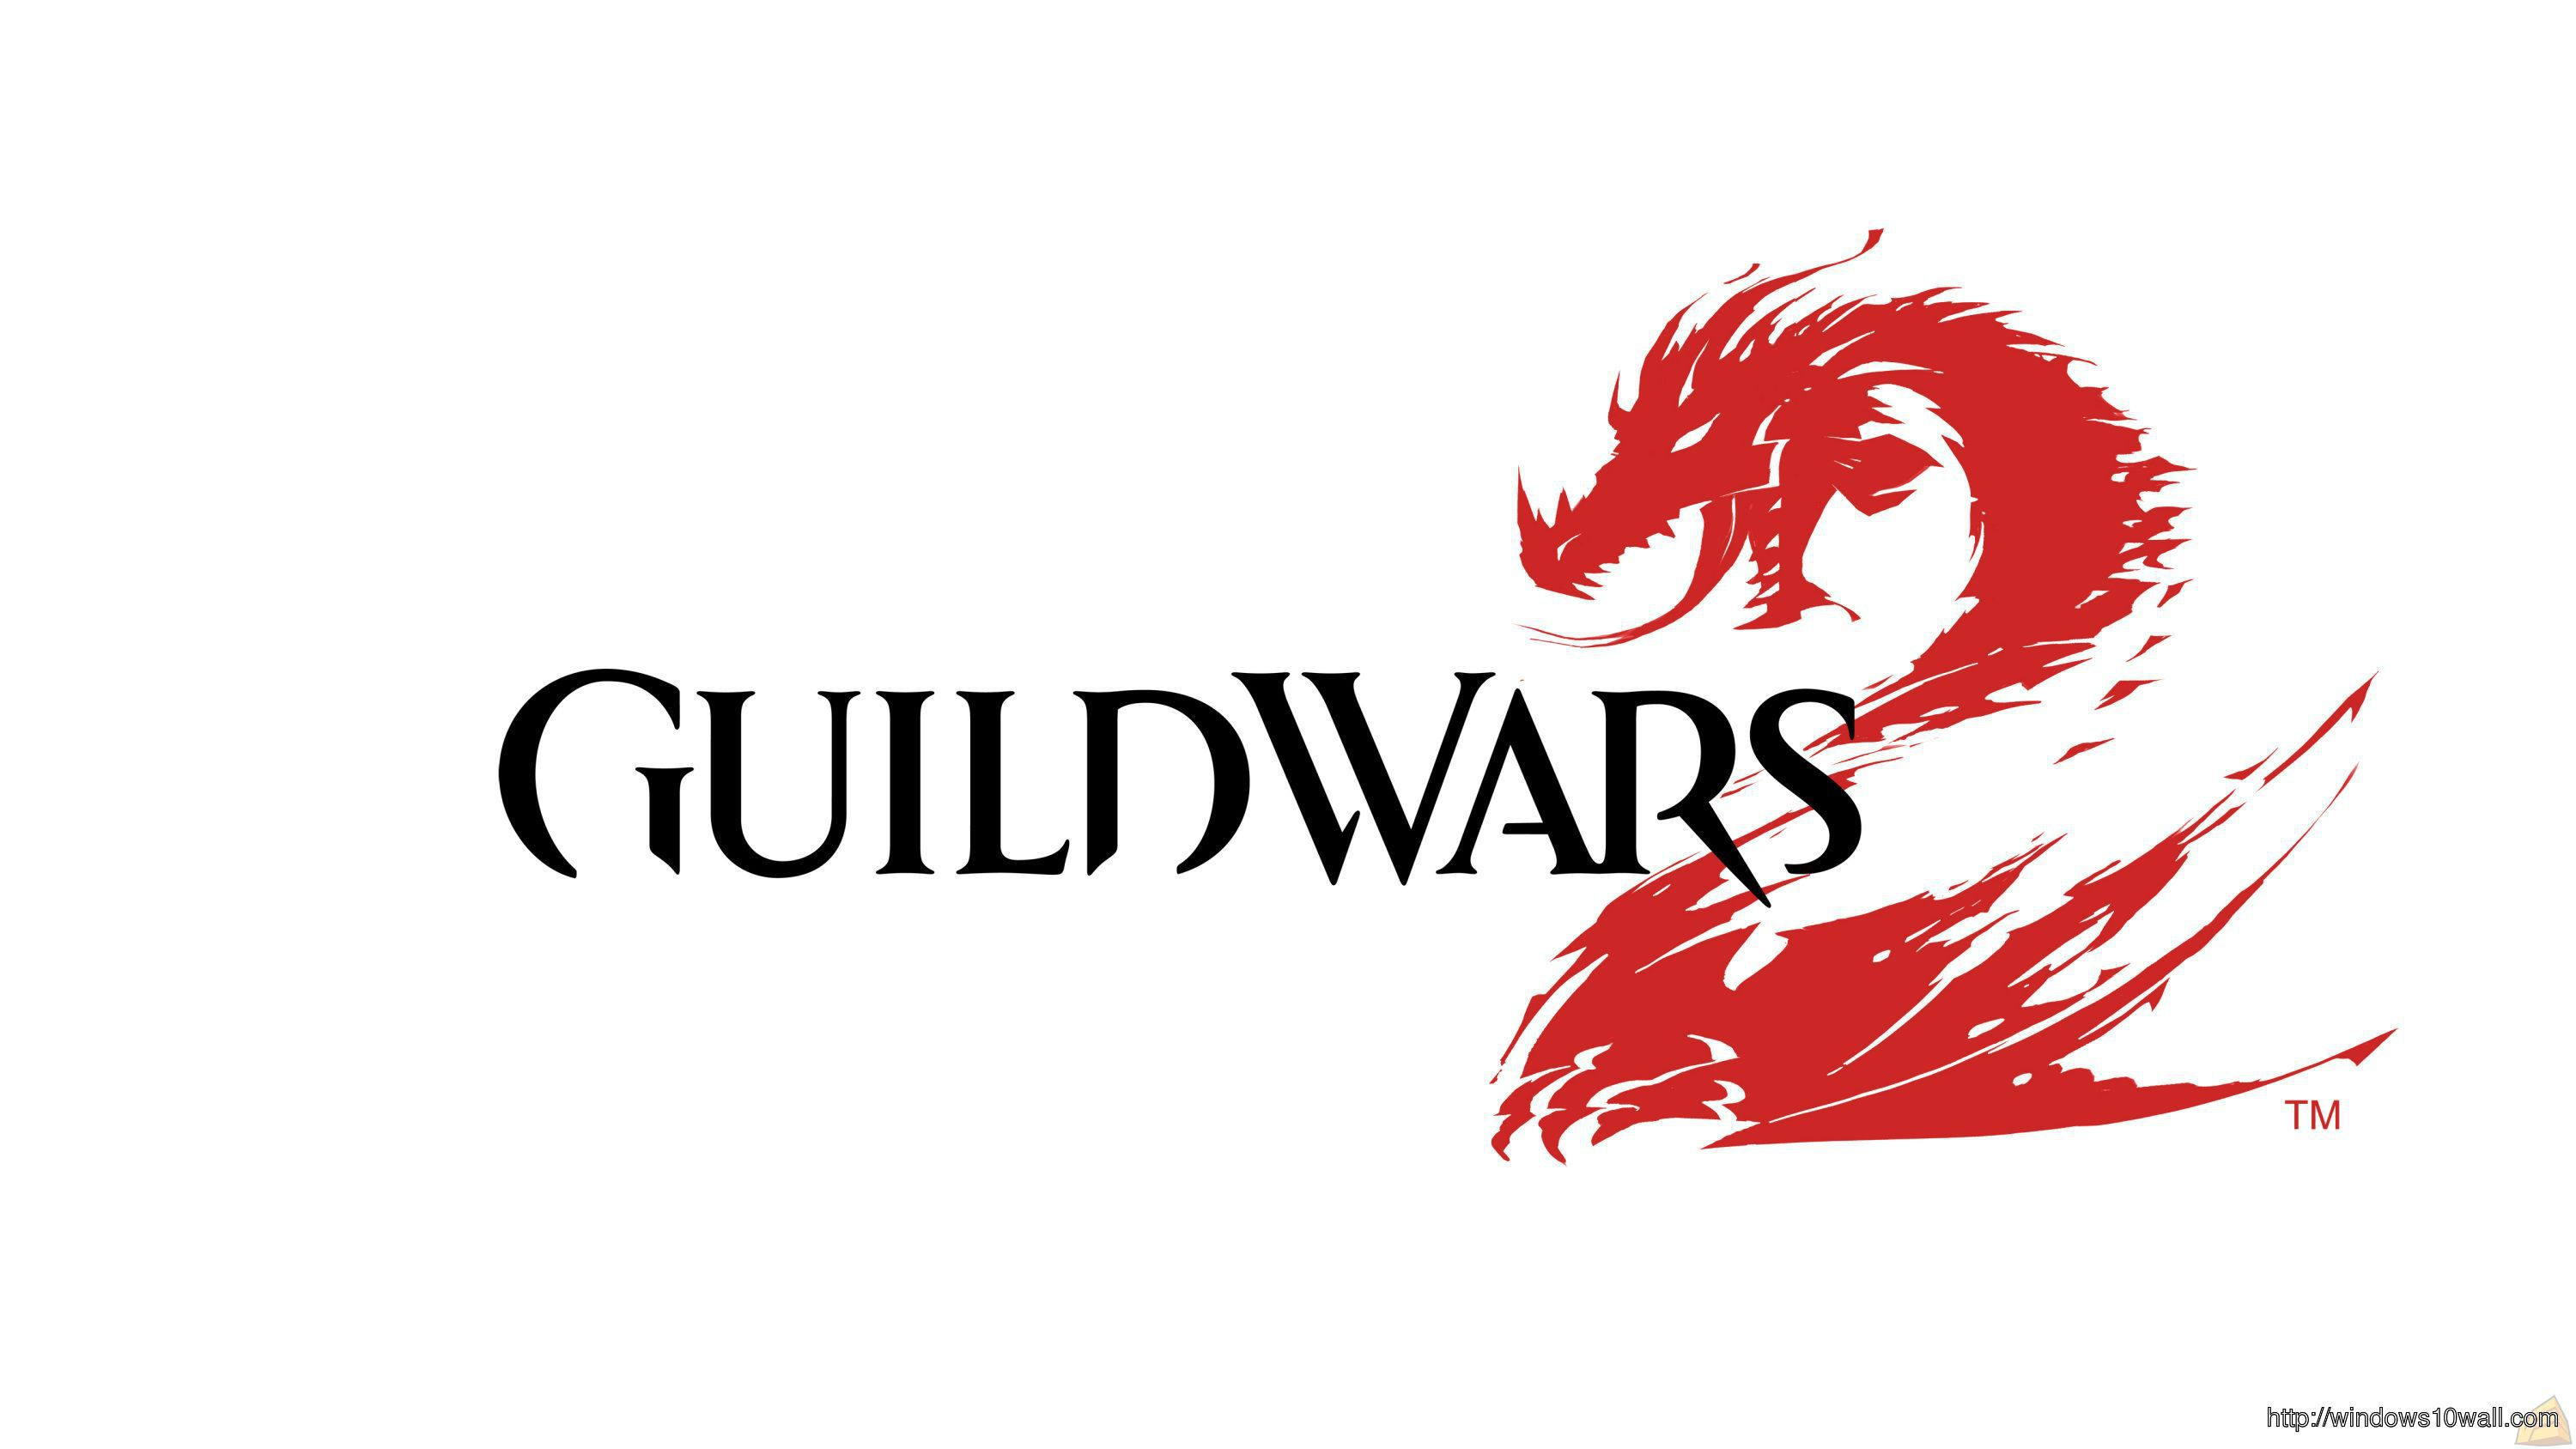 guild-wars-2-logo-wallpaper